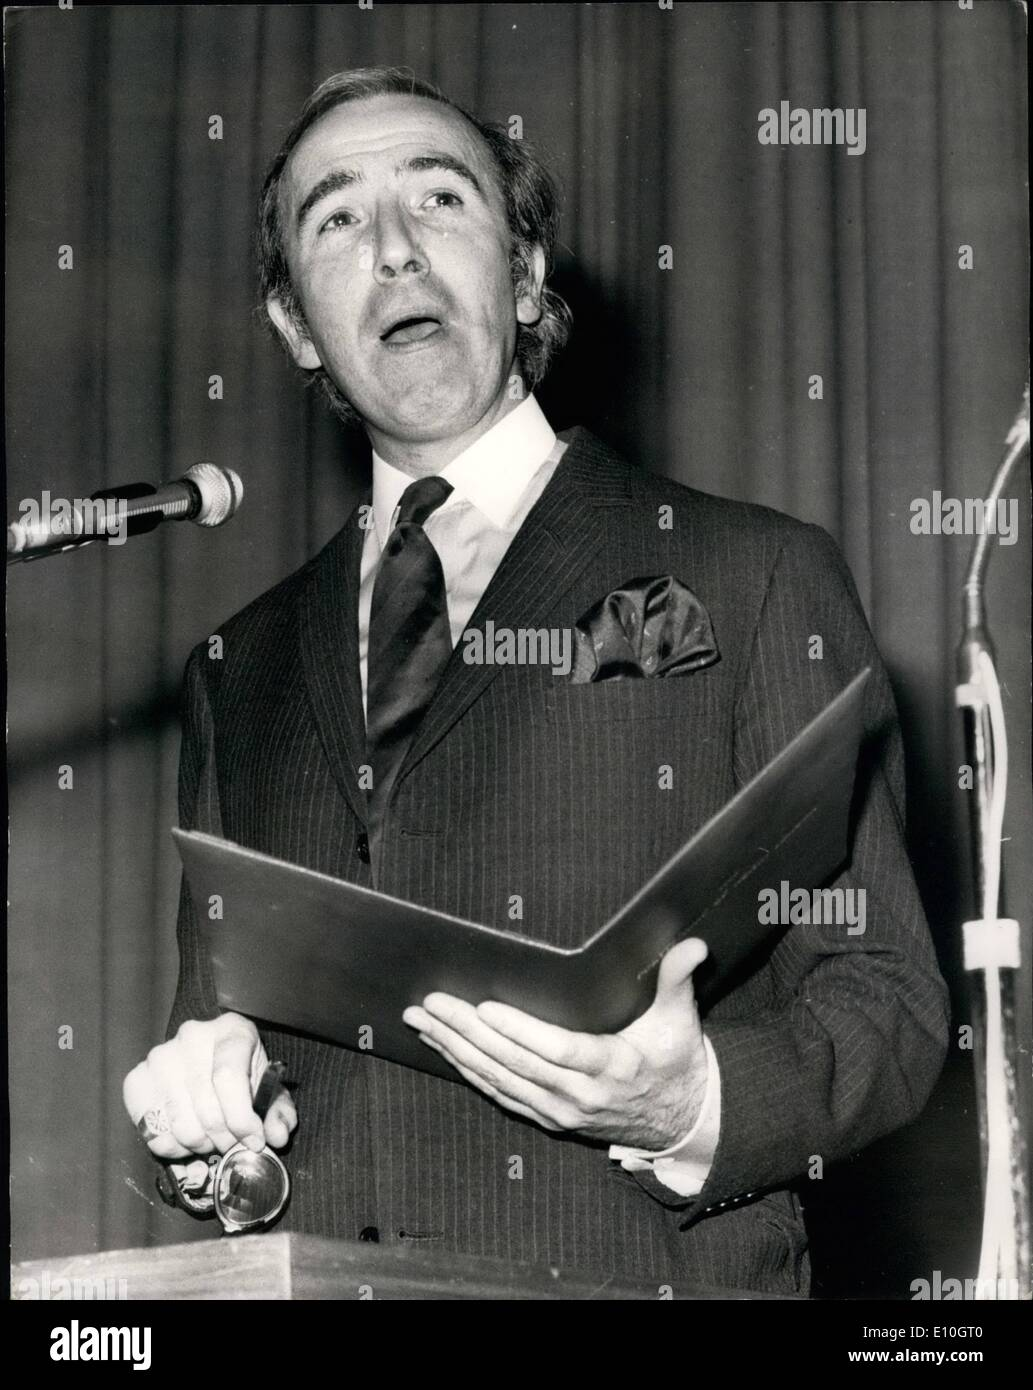 Nov. 11, 1972 - New ''Students Minister'' Gets Stromy Reception: Mr. Norman St.John Stevas, the new Parliamentary Under-Secretary of State, Department of Education and Science, today received a stormy reception at the Queen Elizabeth Hall, South Bank, London when he attended the Designation ceremony of the North London Polytechnic, Holloway. It was one his first engagements since his appointment in Mr. Heath's . Photo Shows Mr. Norman St. John Stevas making his speech at today's ceremony. - Stock Image